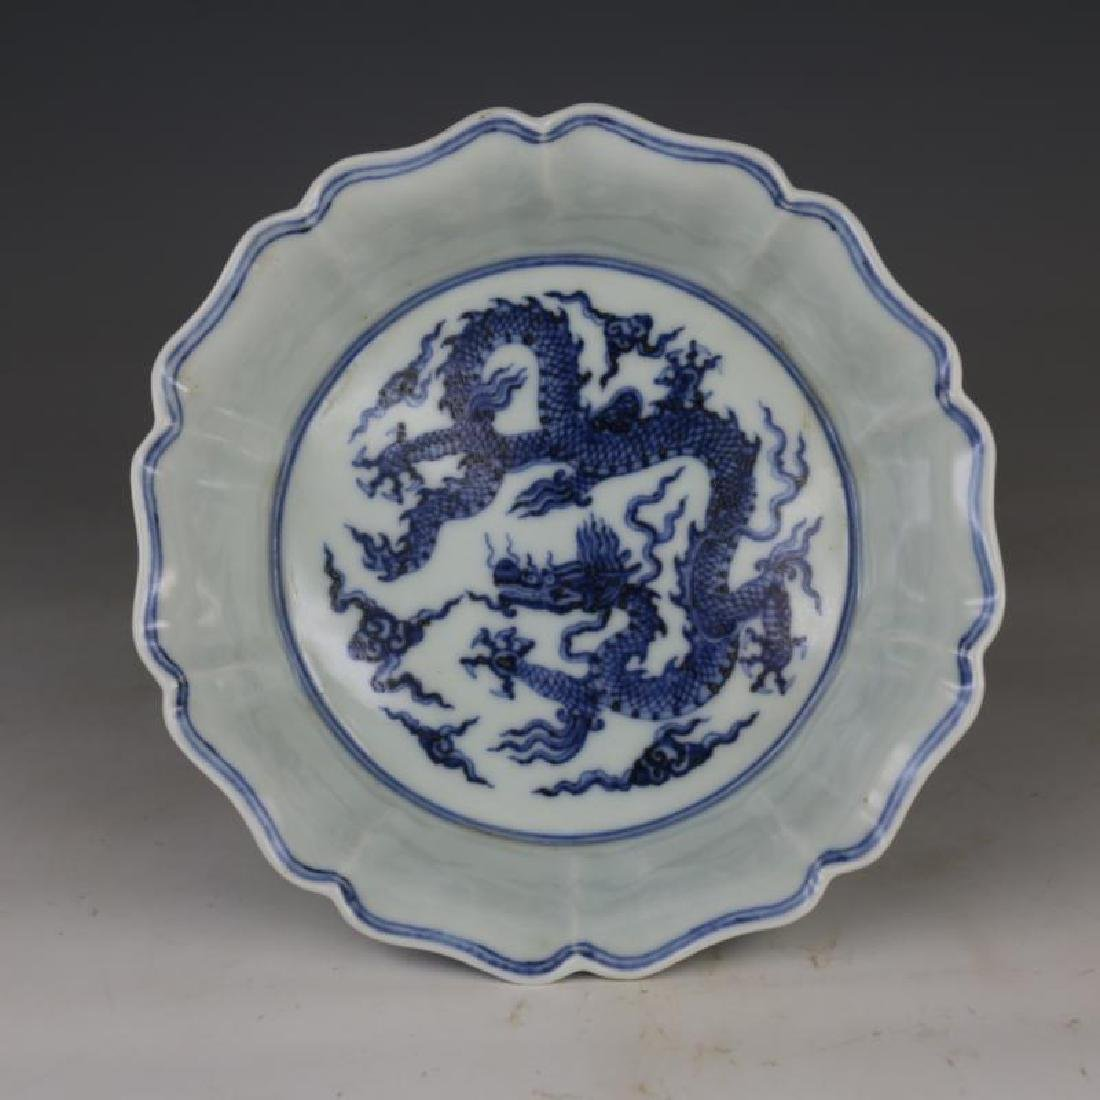 CHINESE PORCELAIN BLUE AND WHITE DRAGON BRUSH WASHER